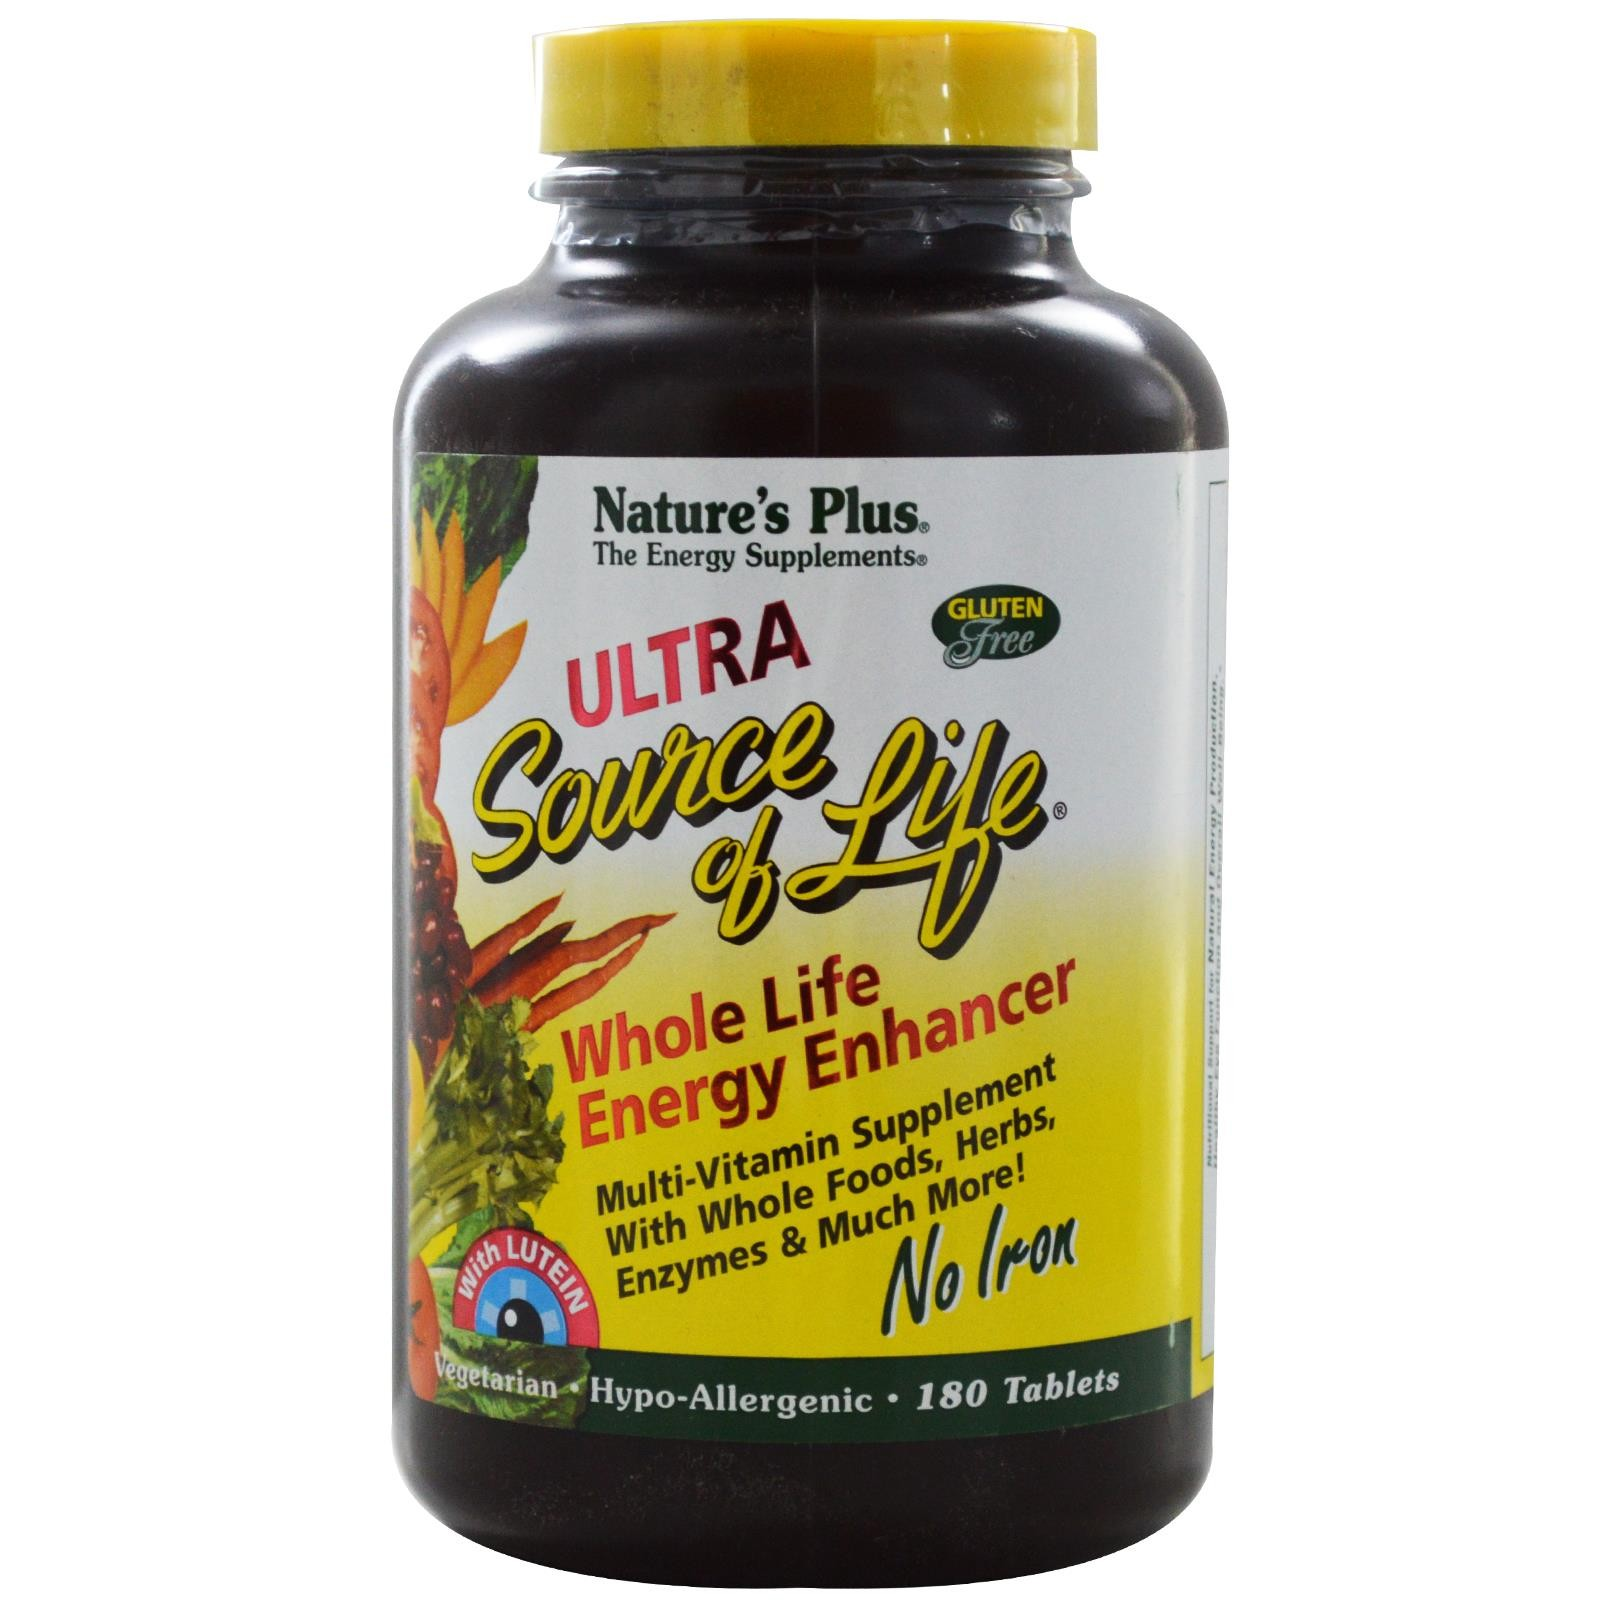 ULTRA SOURCE OF LIFE 180 TABS NO IRON